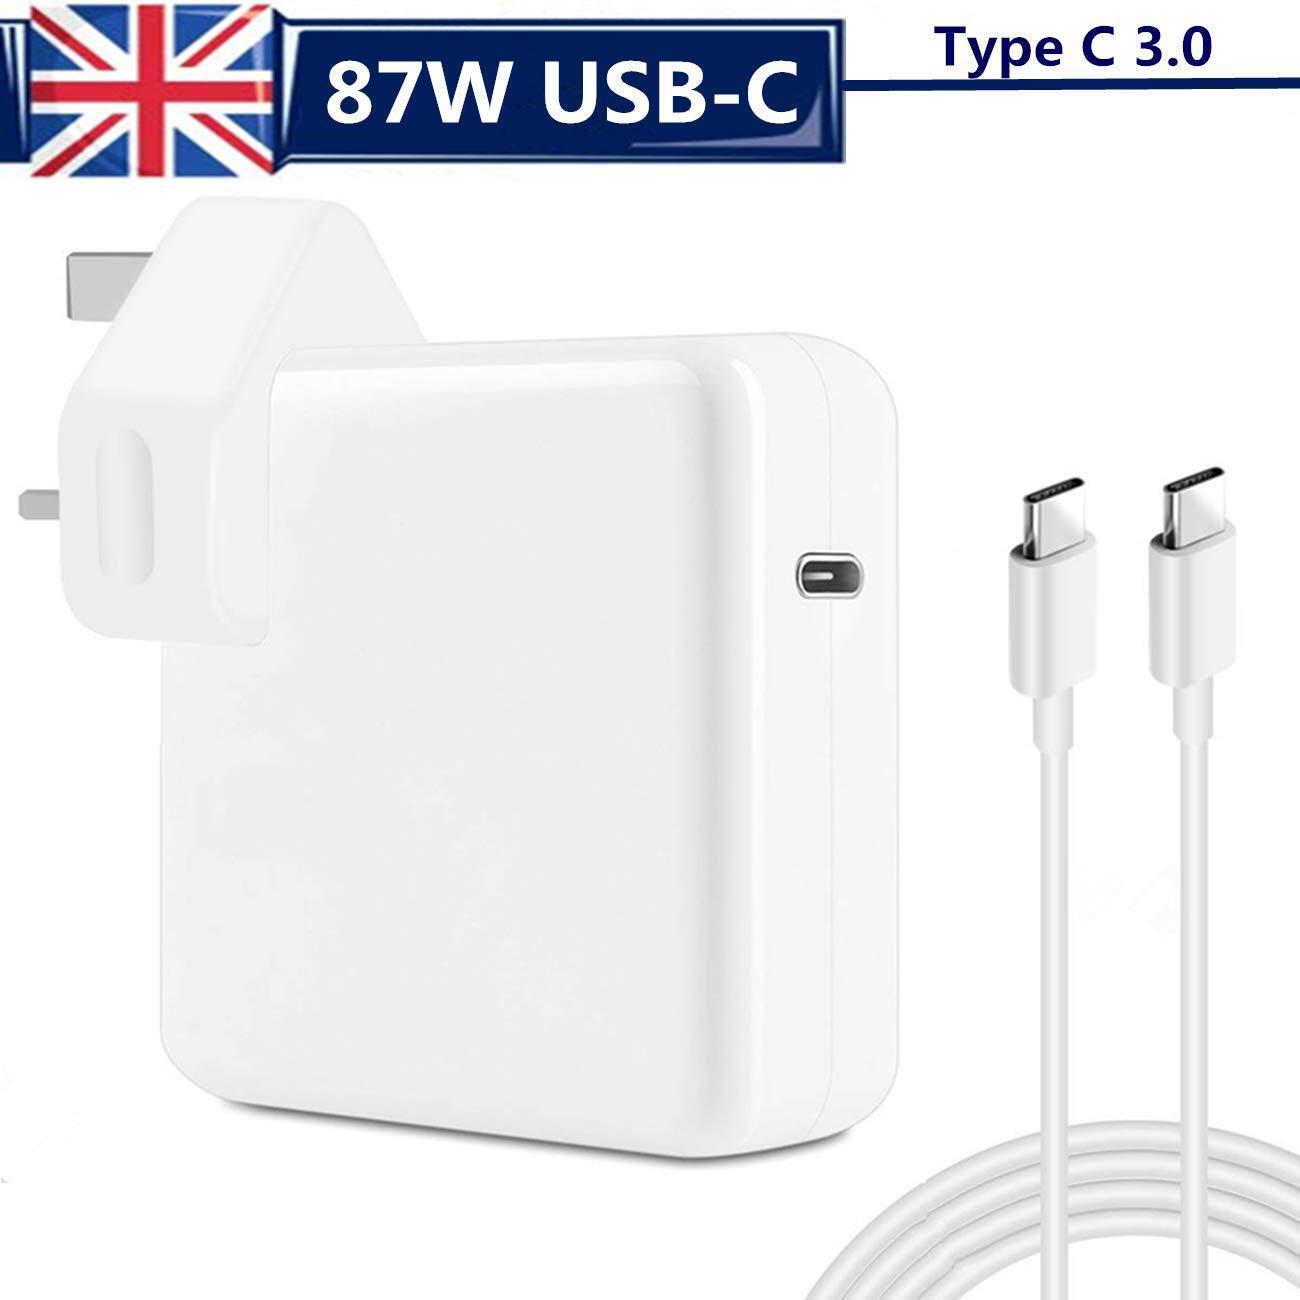 87W USB-C Power Adapter 87W Type-C Power Delivery Laptop Charger with 2M USB C Cable Compatible with Macbook Pro//Air Charger Compatible Macbook Pro 12 13 15 2016 Late MacBook Air 2018 Late